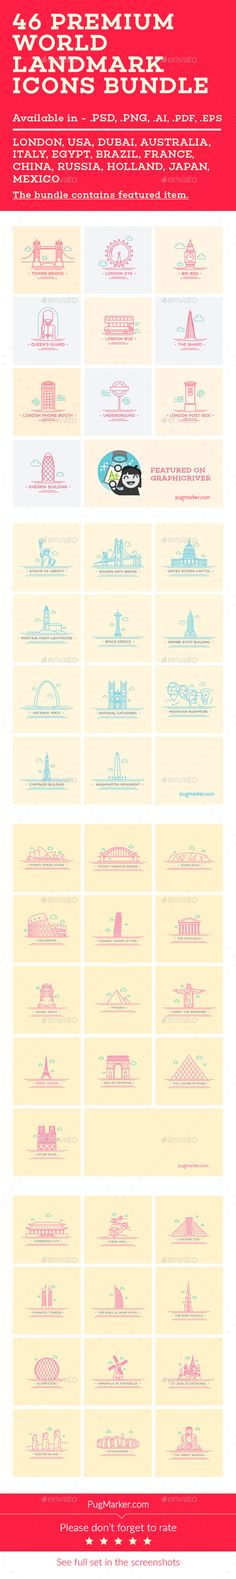 Premium quality World Landmark/Monuments. You can download it from here http://graphicriver.net/item/world-landmark-icons-bundle-vol-1234-/10869022?ref=PugMarker